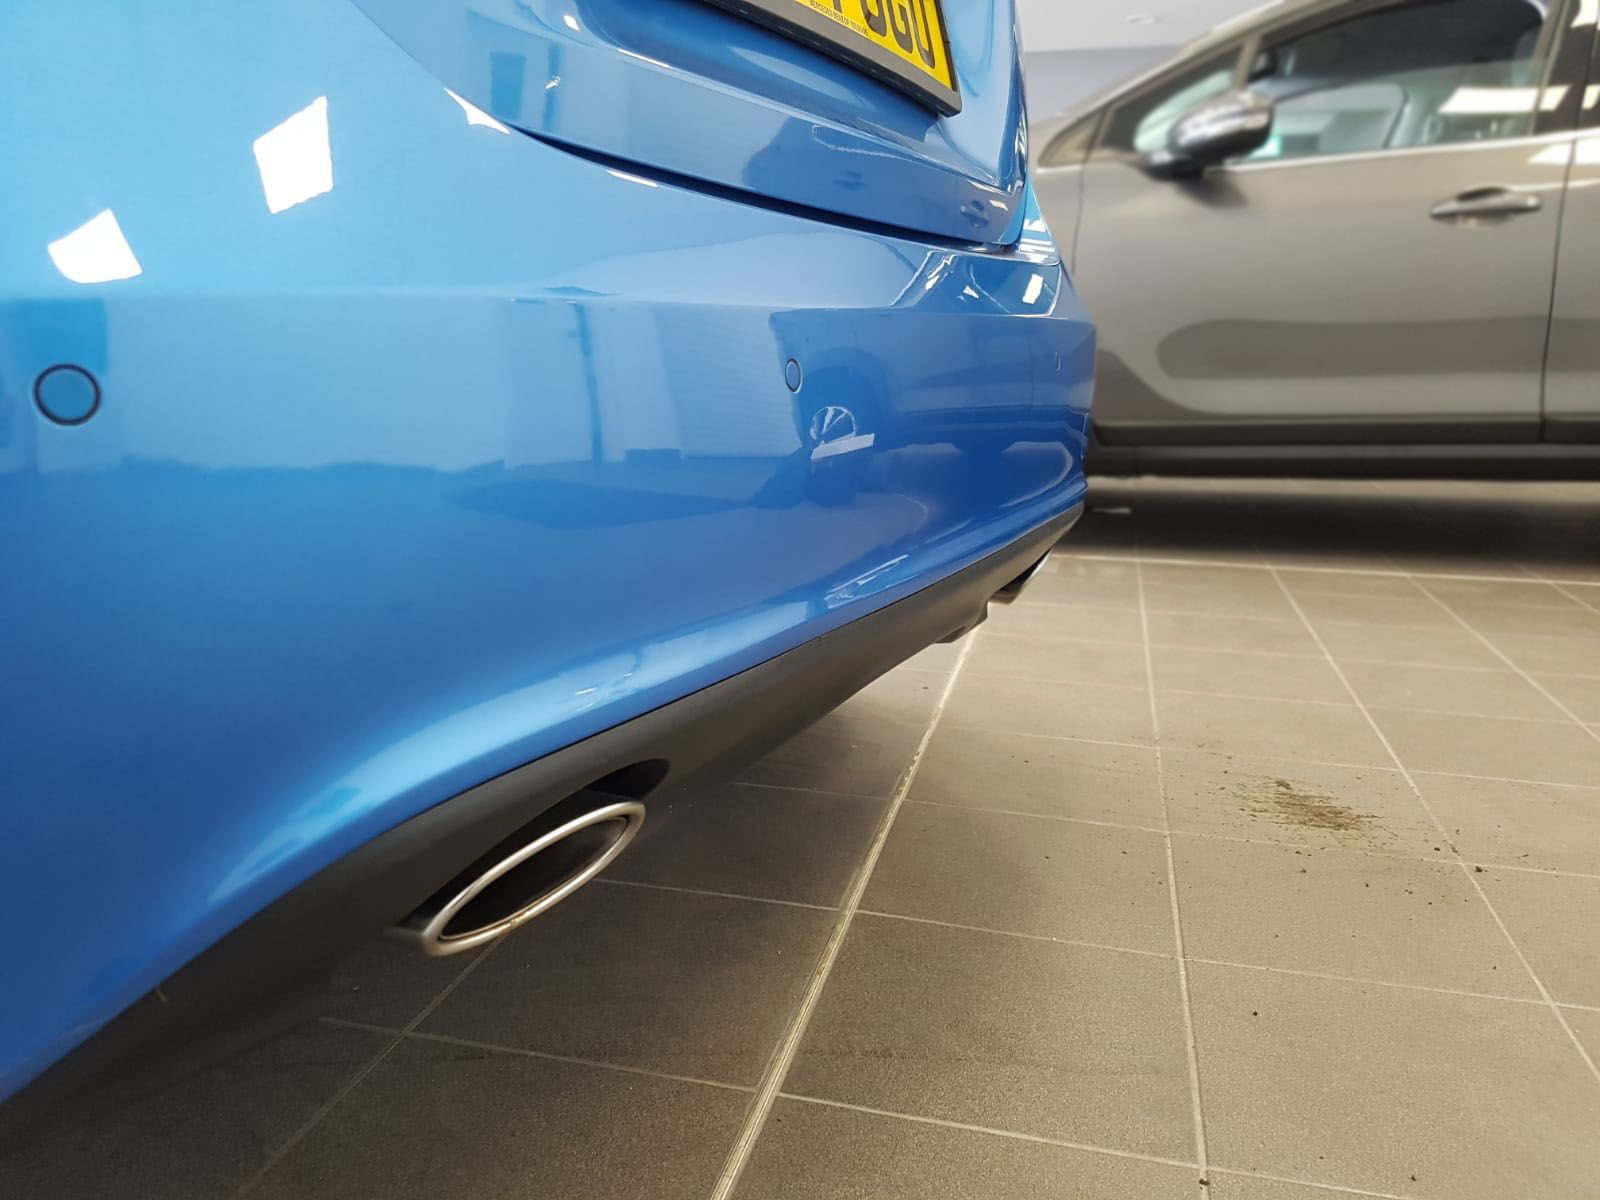 Mercedes A Class - Flush sensors close up